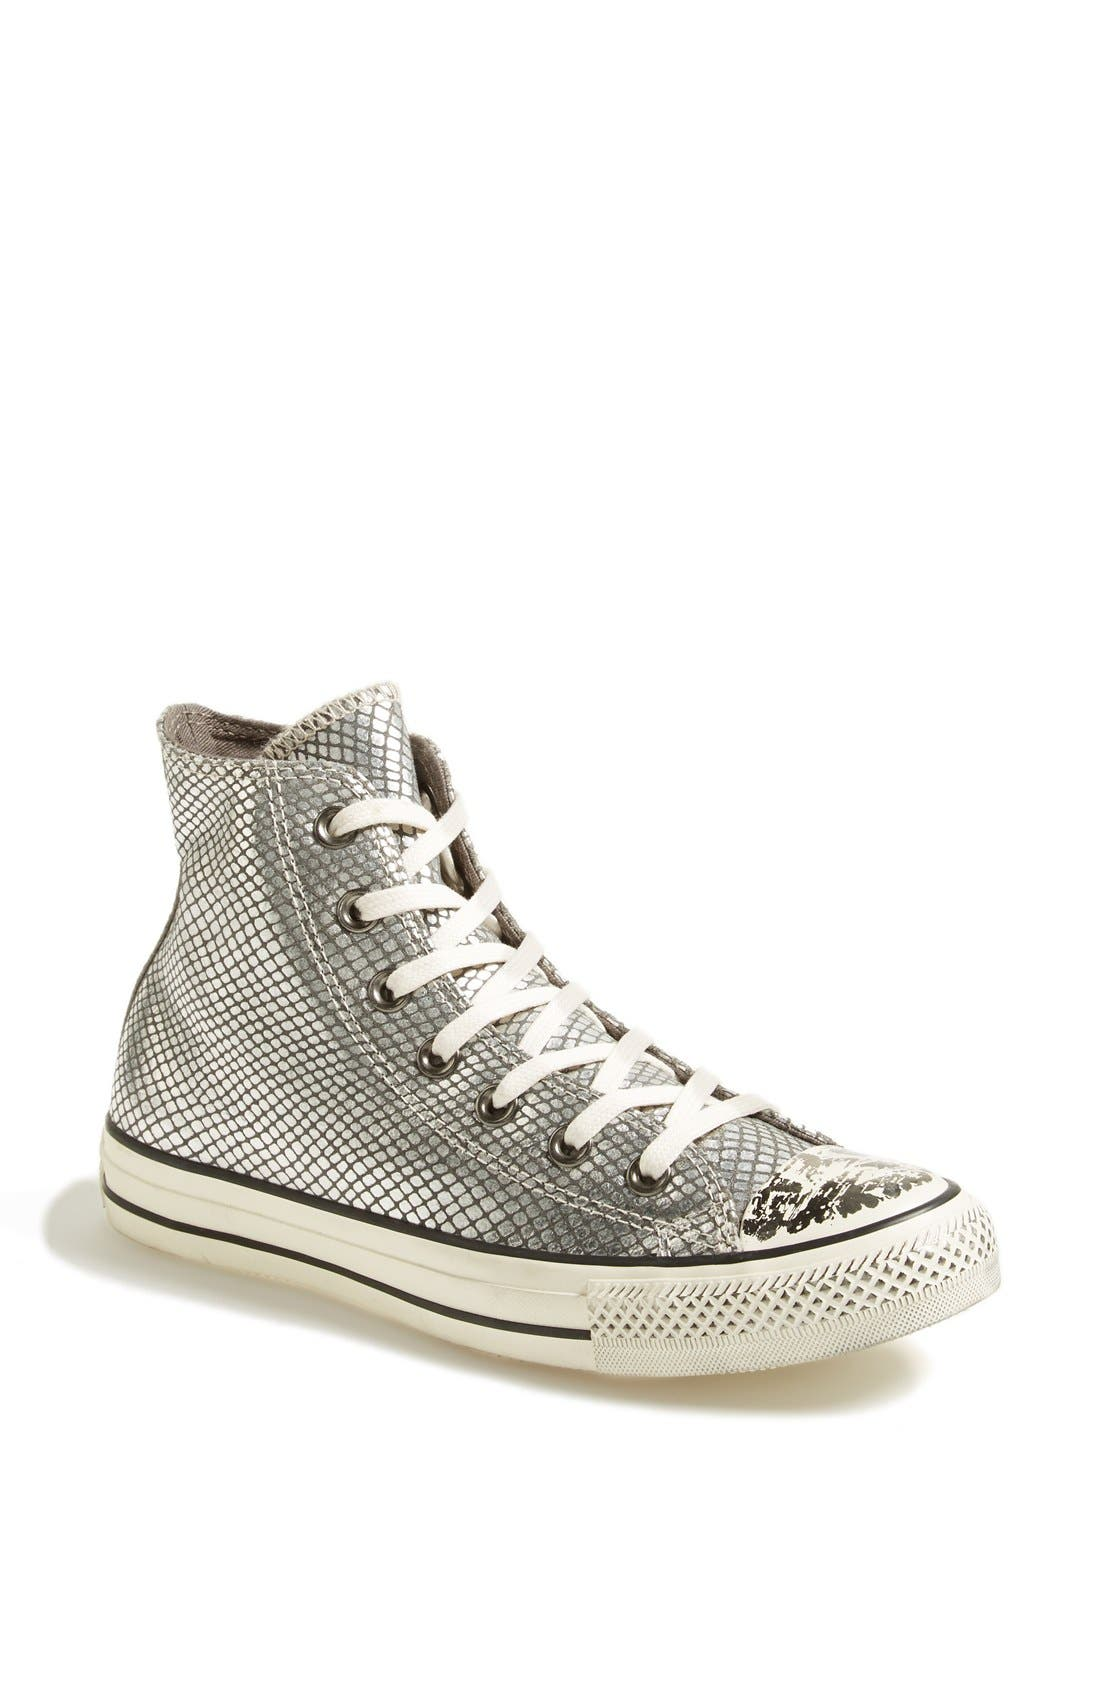 Main Image - Converse Chuck Taylor® All Star® Snake Print Leather High Top  Sneaker